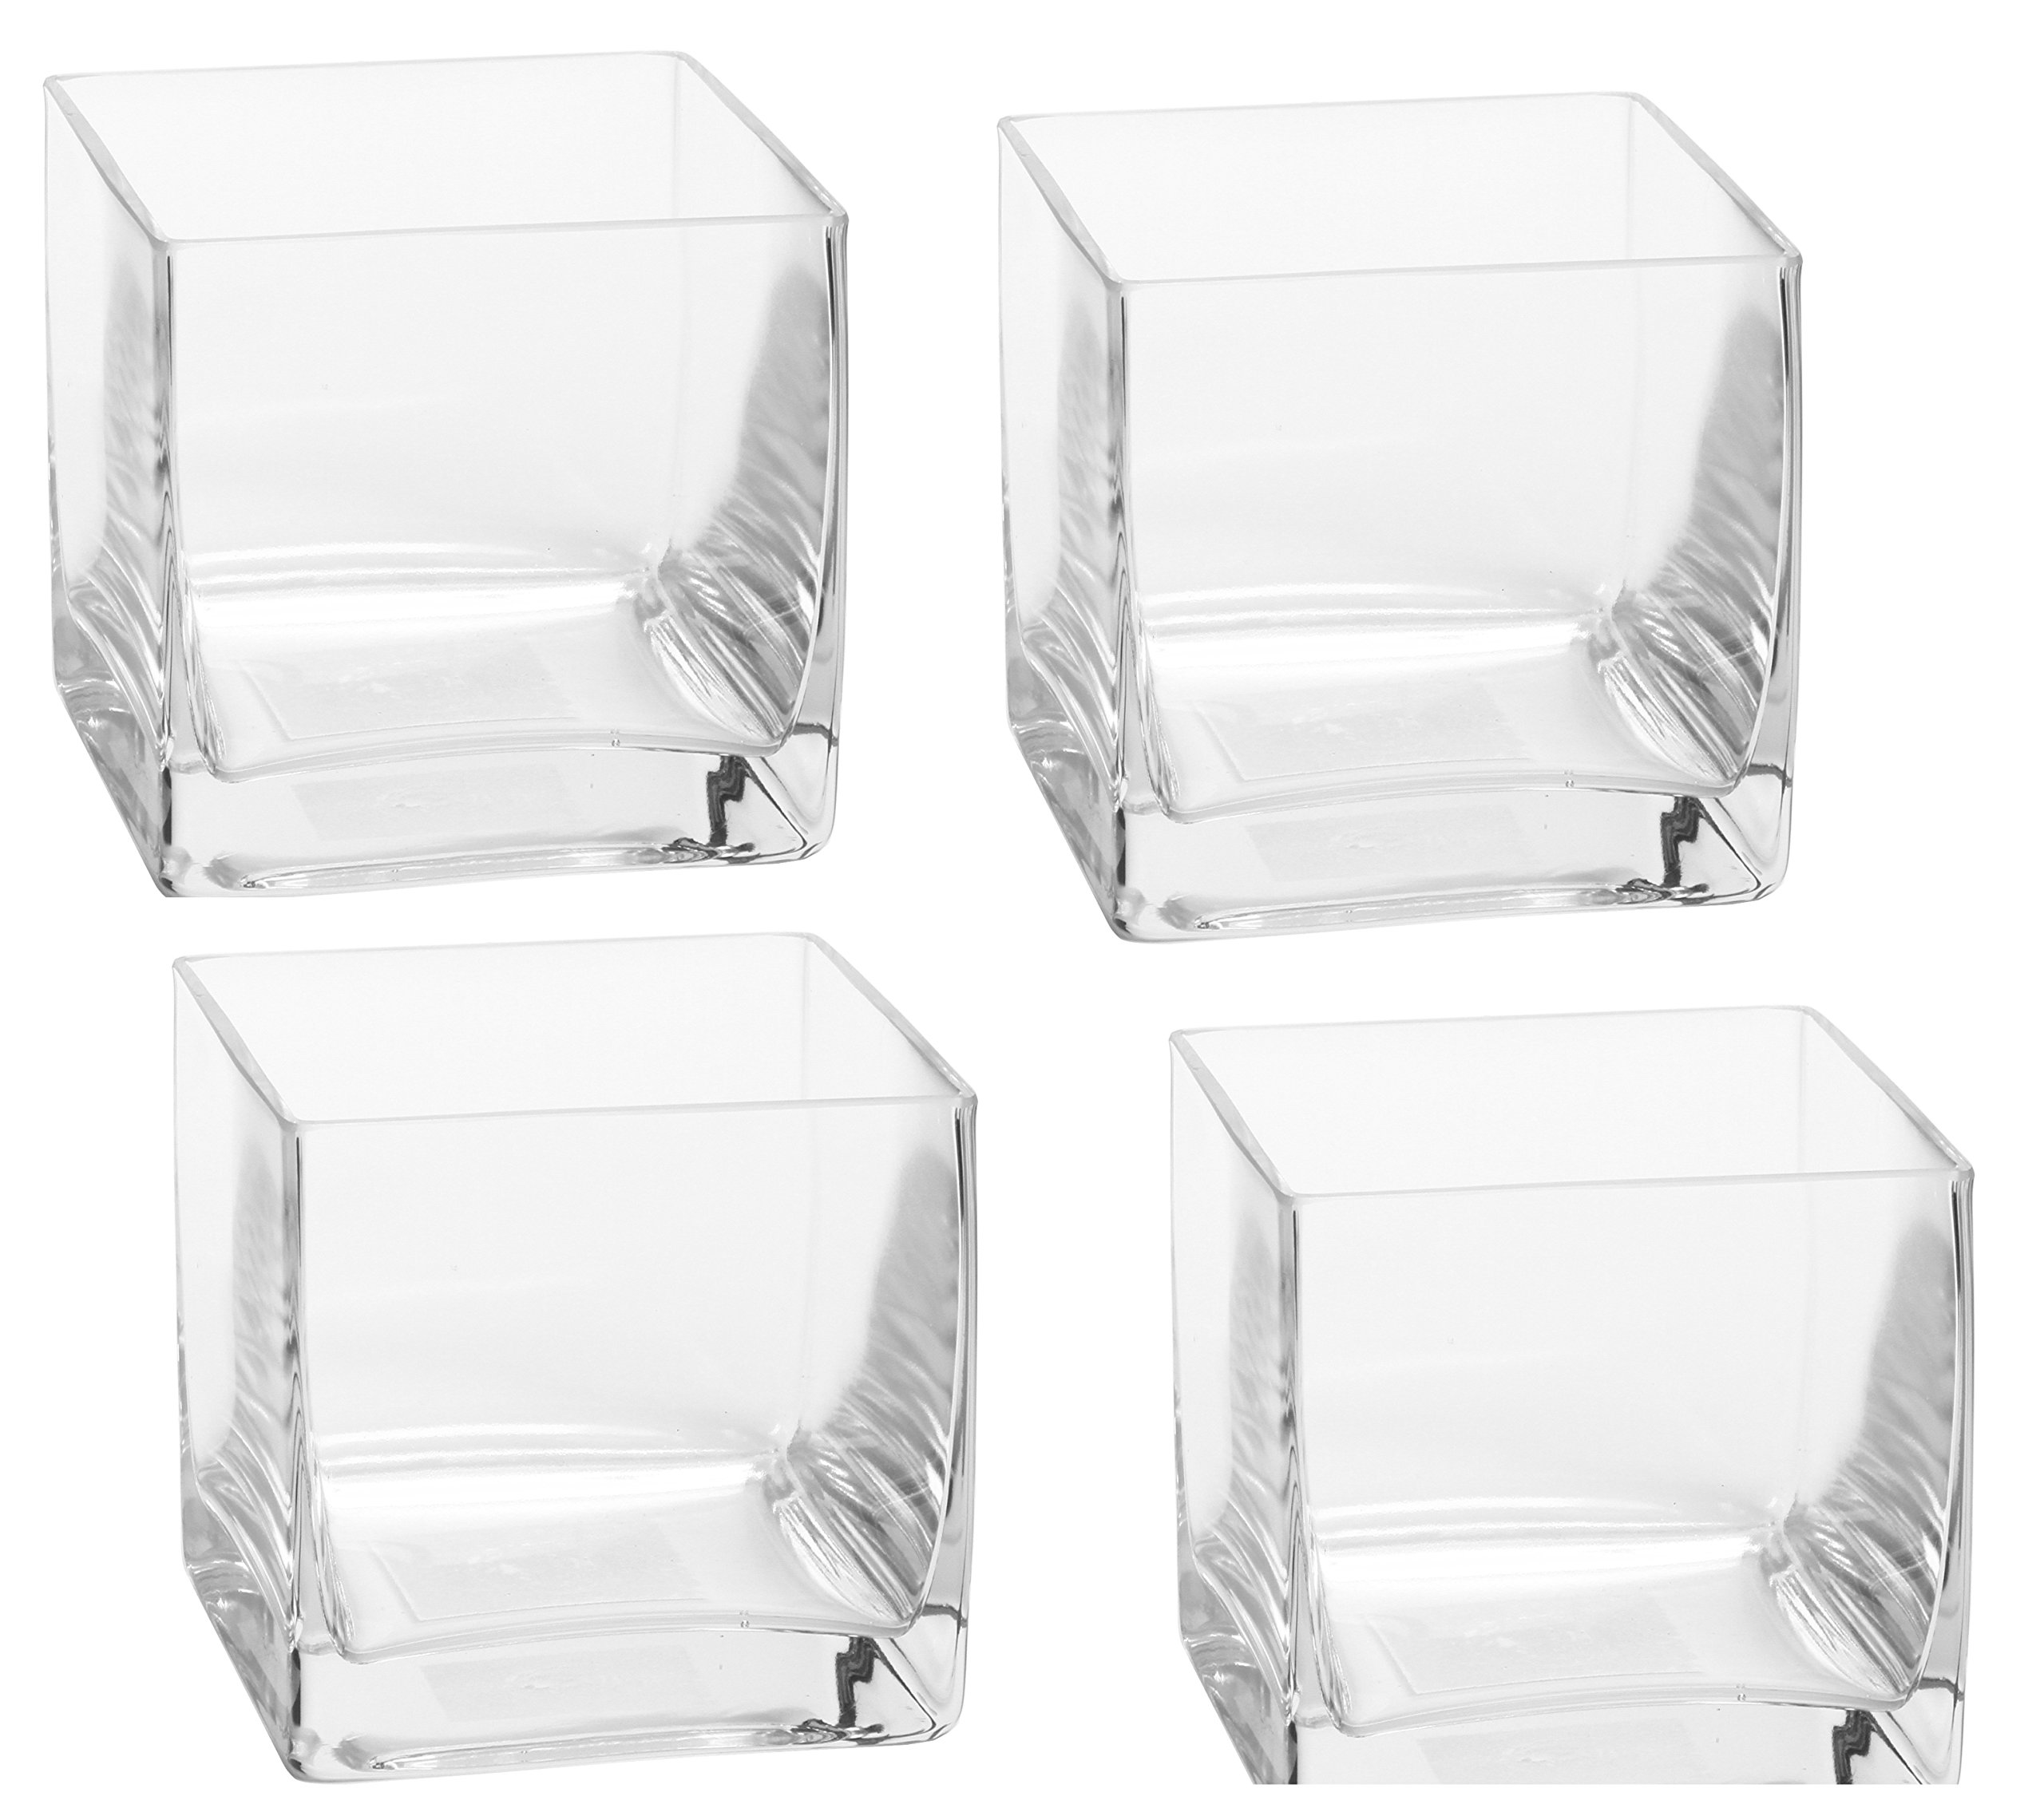 Hosley Set of 4 Glass Vases/Cubes - 3.94'' Square - Ideal Gift for Weddings, Spa, Aromatherapy. Flower Arrangements, Bowl for Orbs, DIY, Craft Projects, LED Votive Candle Gardens O7